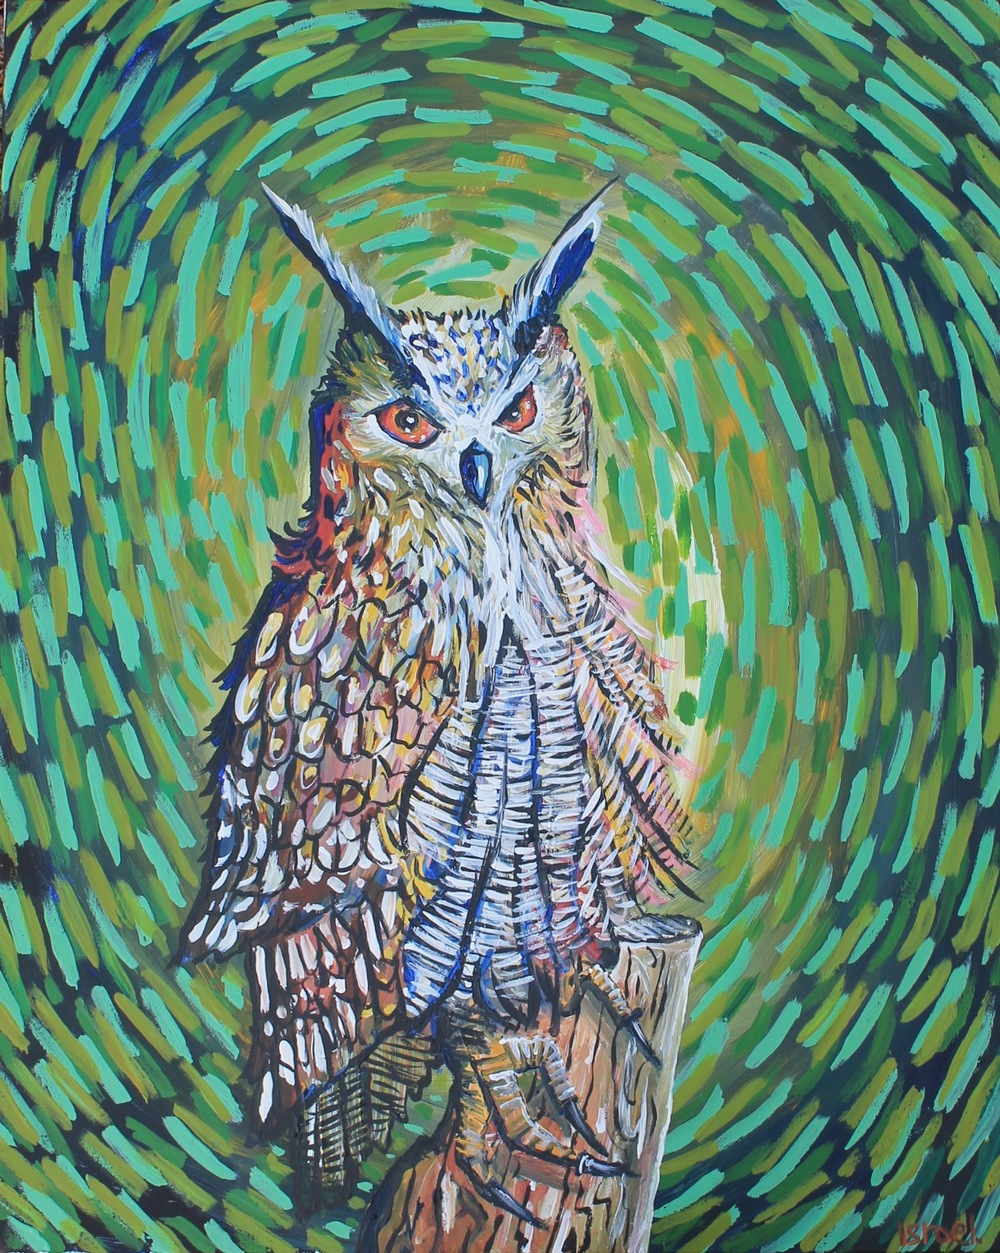 """Eurasian Eagle-Owl."" 20 x 30 inches. Acrylic paint. For sale $400."